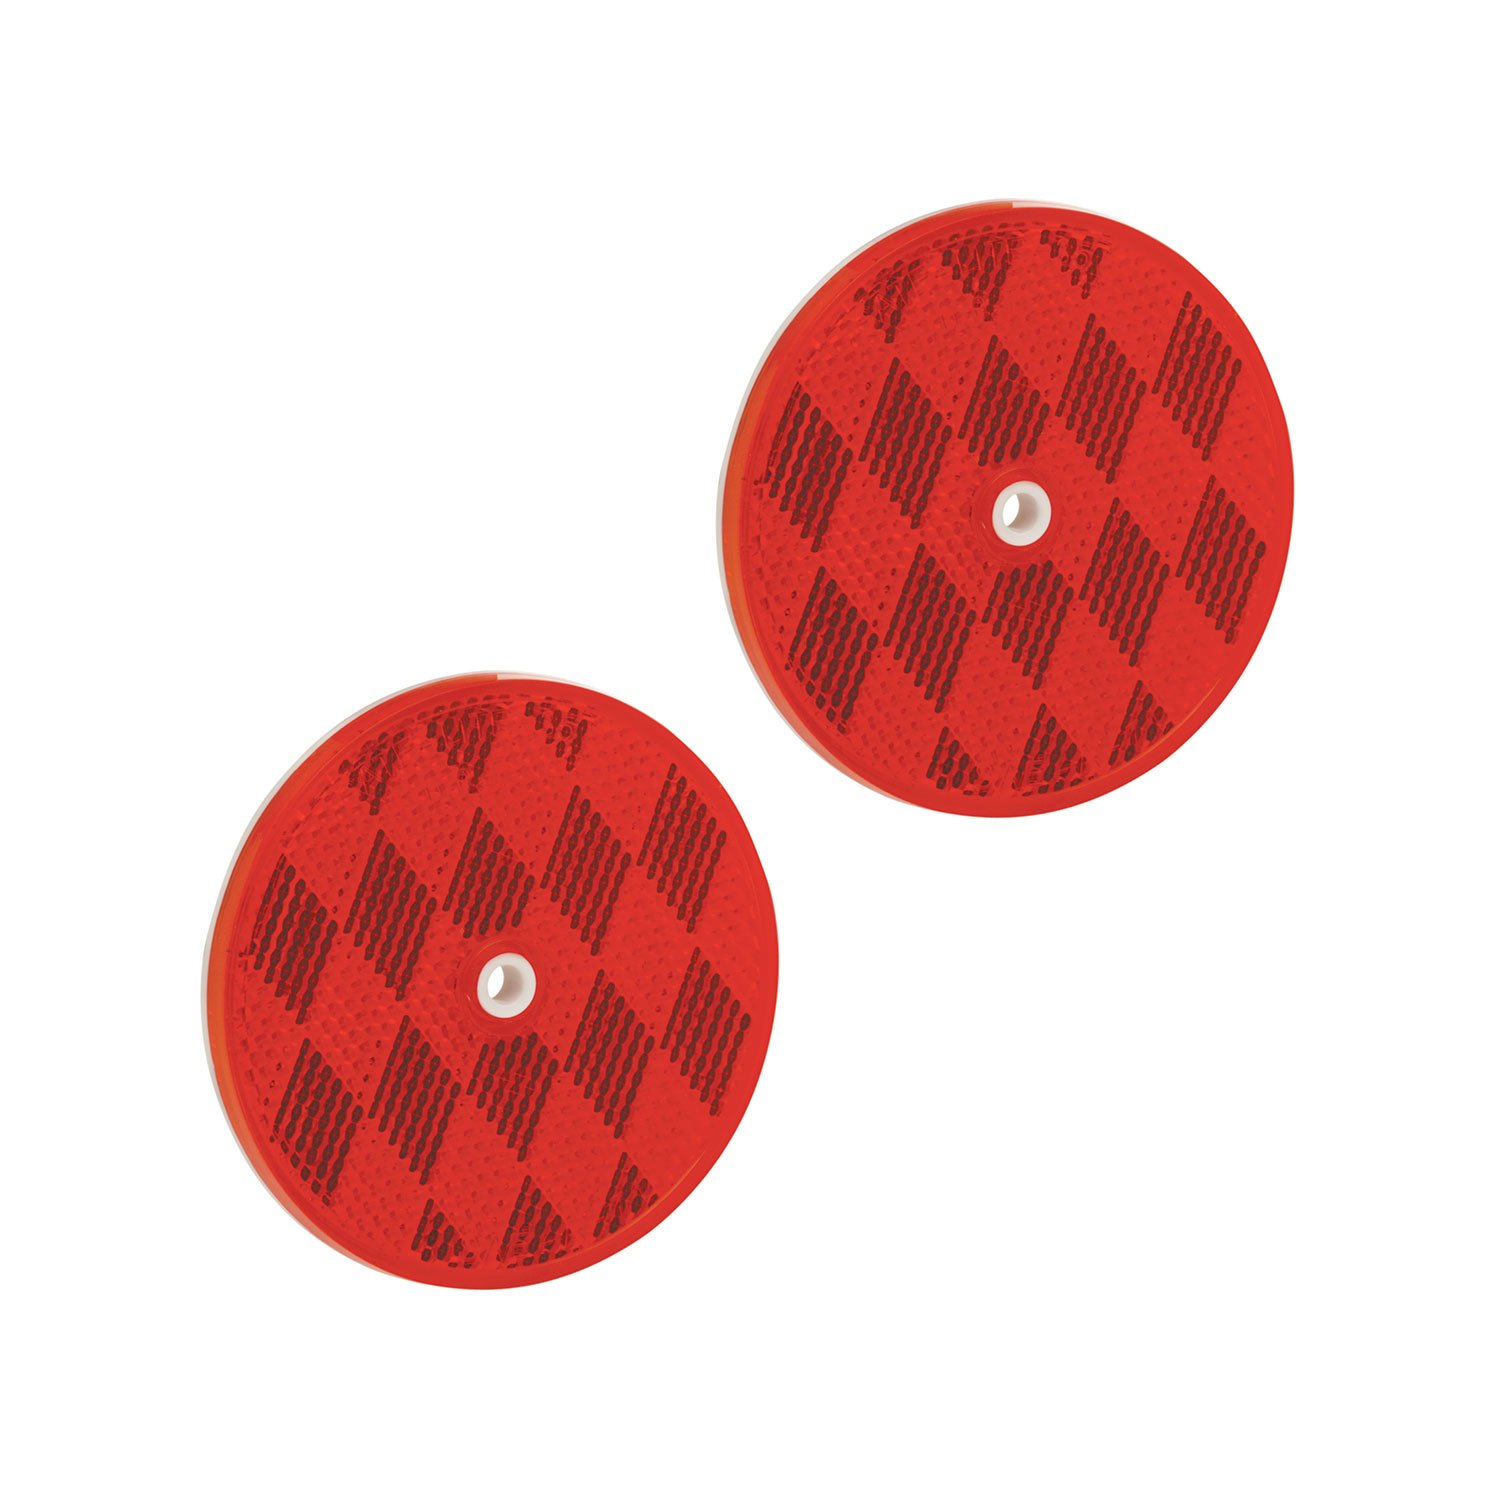 Bargman 74-68-010 Class A 3-3/16'' Round Red Reflector with Center Mounting Hole - 2 Pack